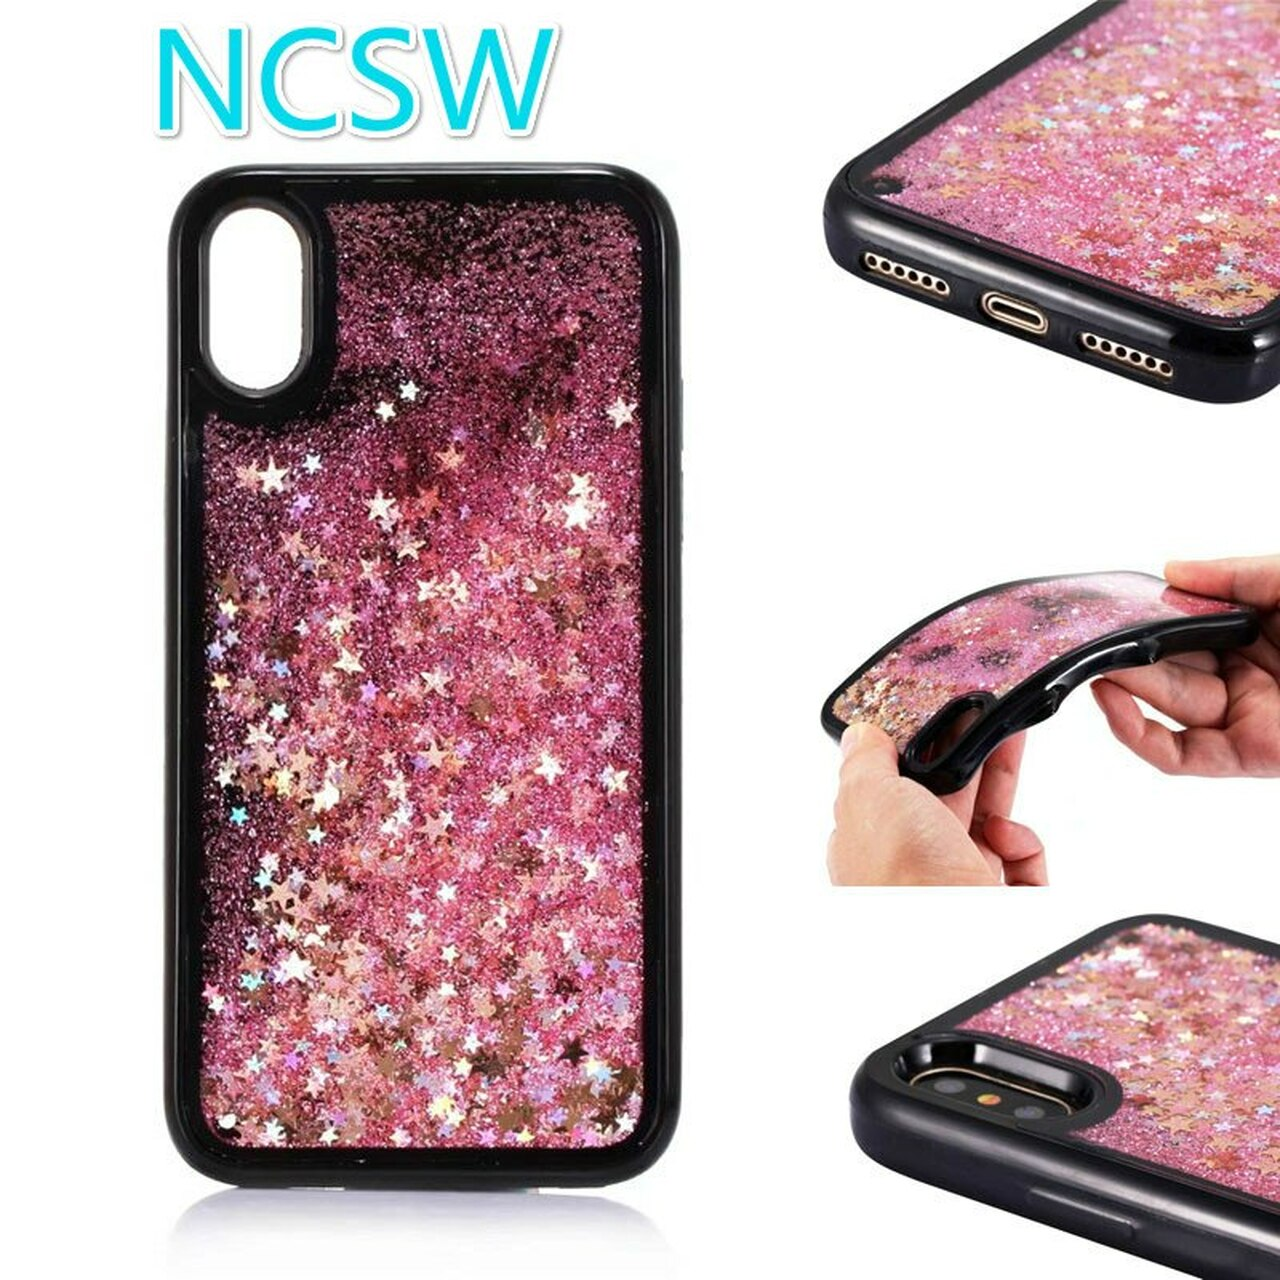 c4b877031ad ... Glitter Star Bling Liquid twinkling Quicksand TPU Phone Case For  Samsung Galaxy S8 S9 Plus A8 ...